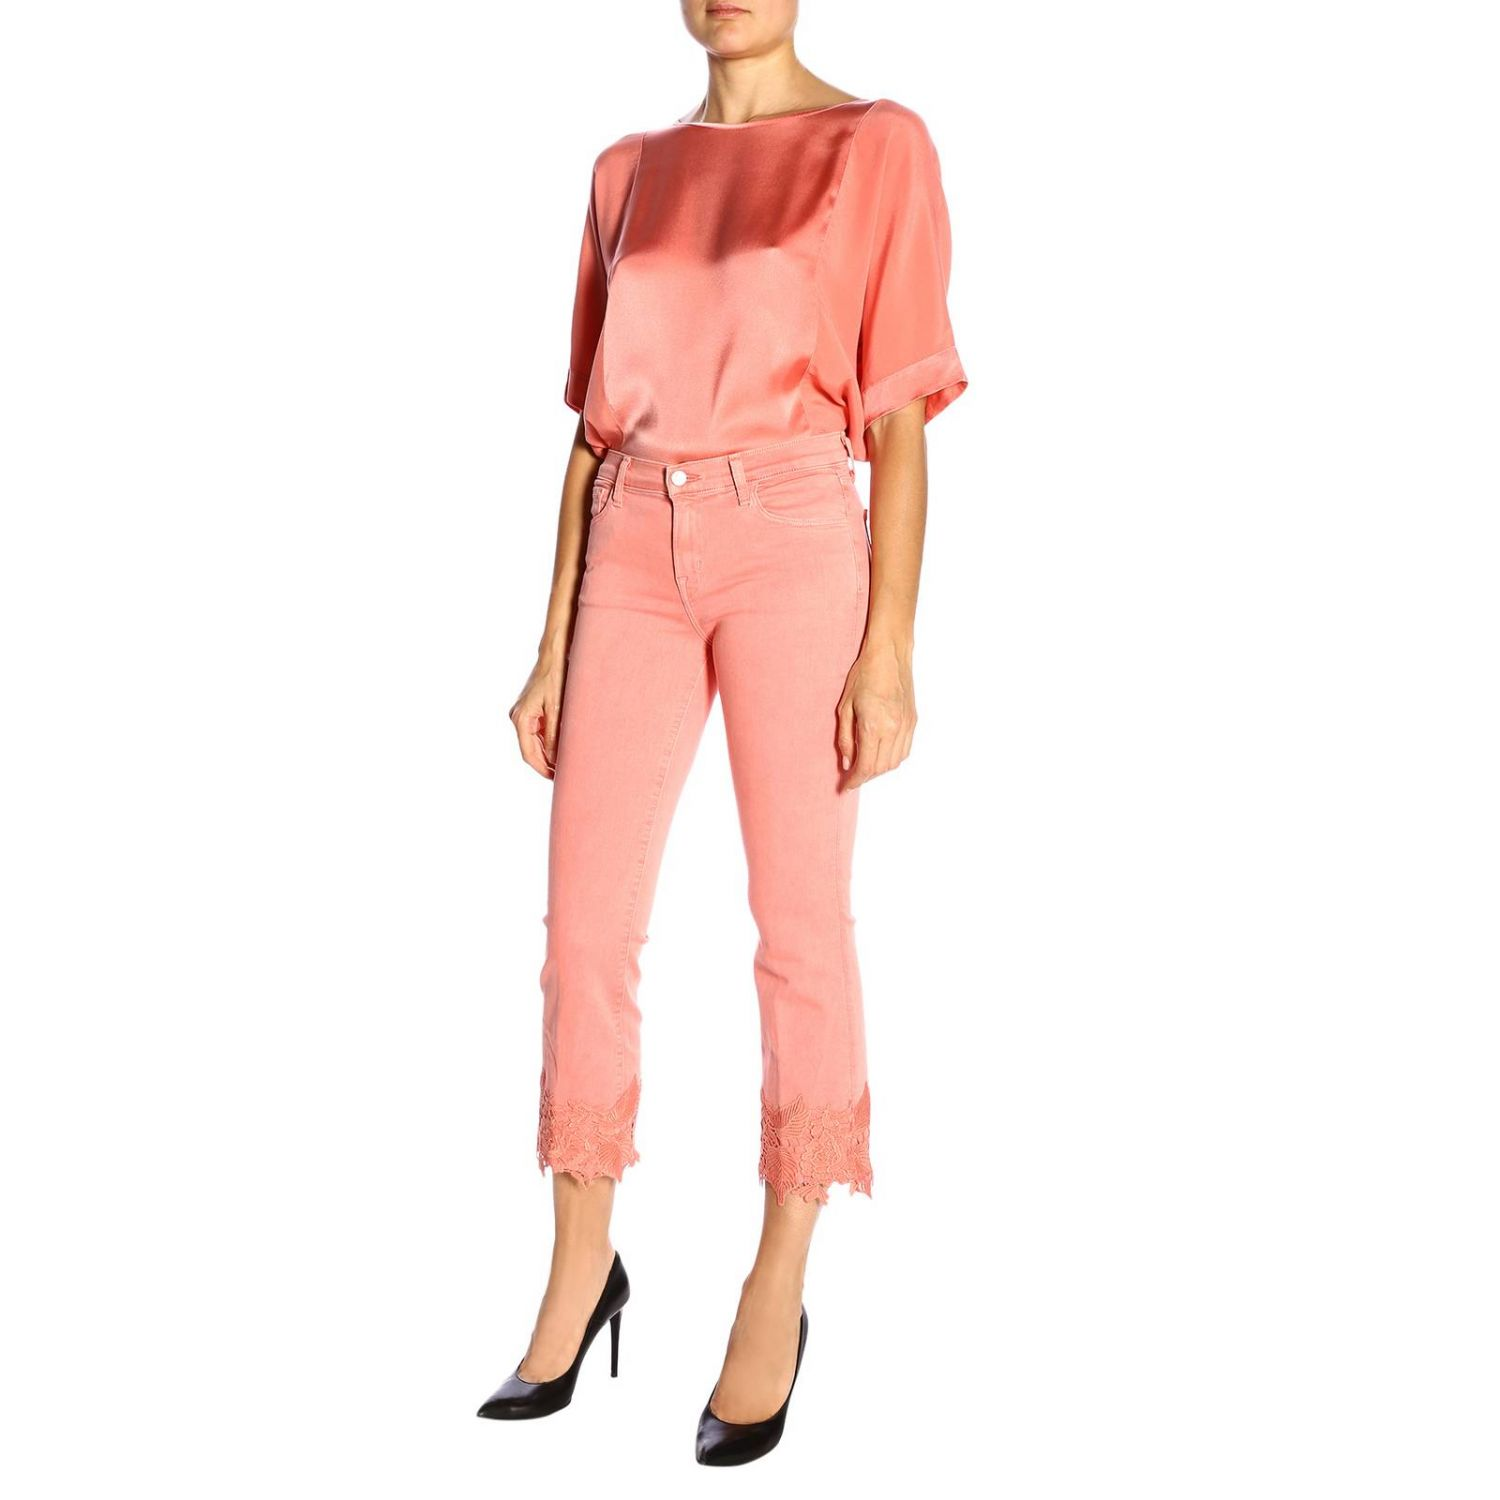 Jeans mujer J Brand rosa 5